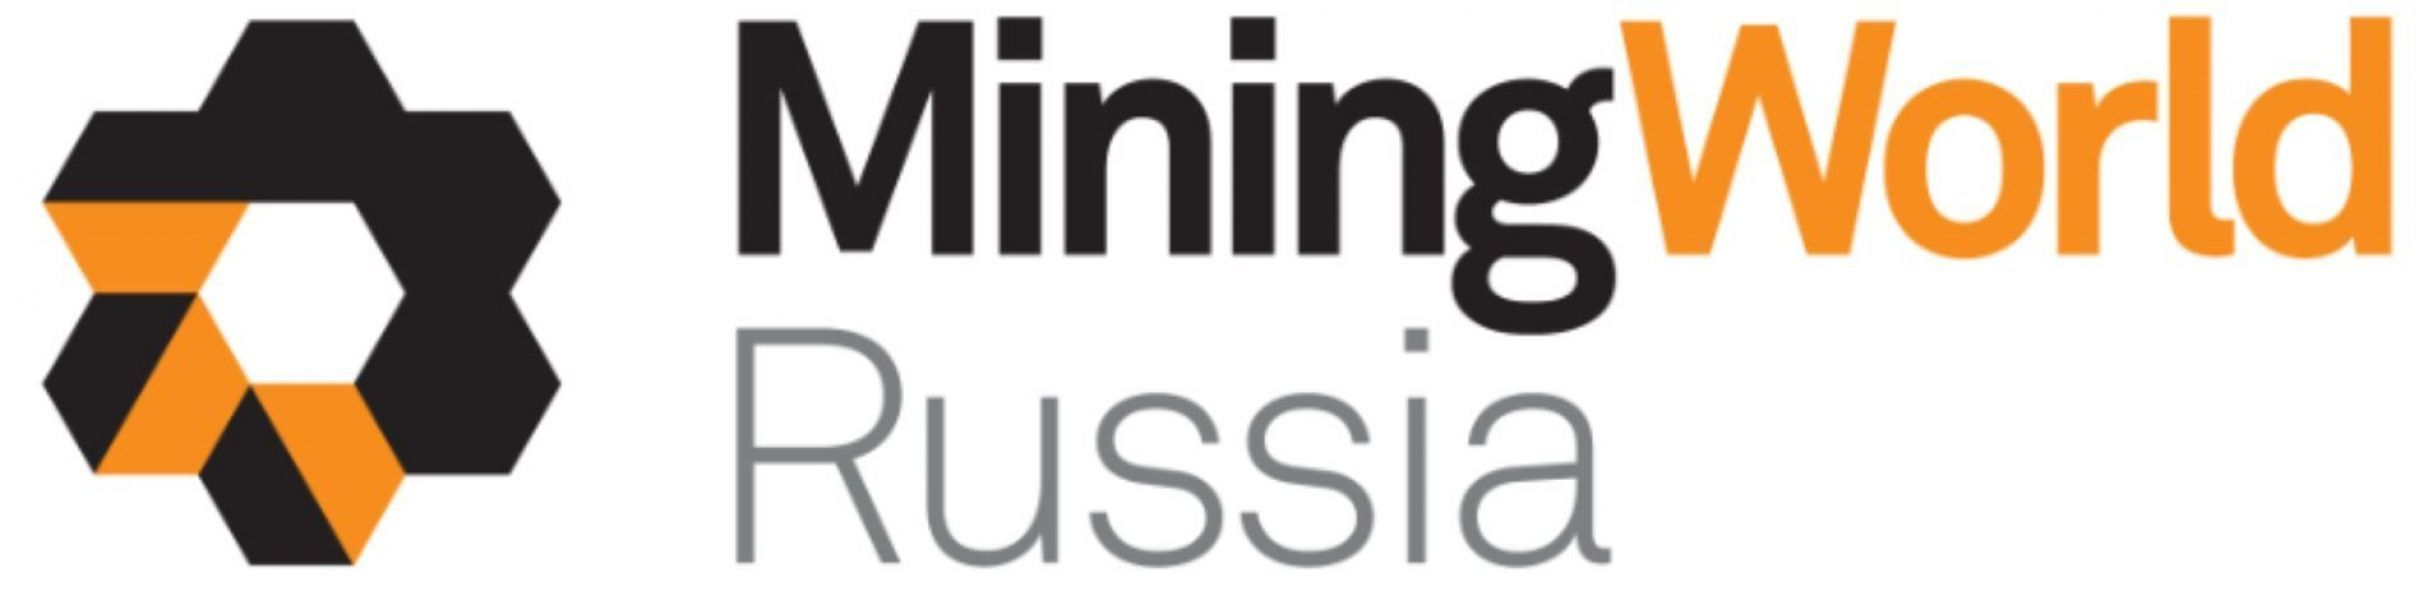 Logotipo de MiningWorld Russia